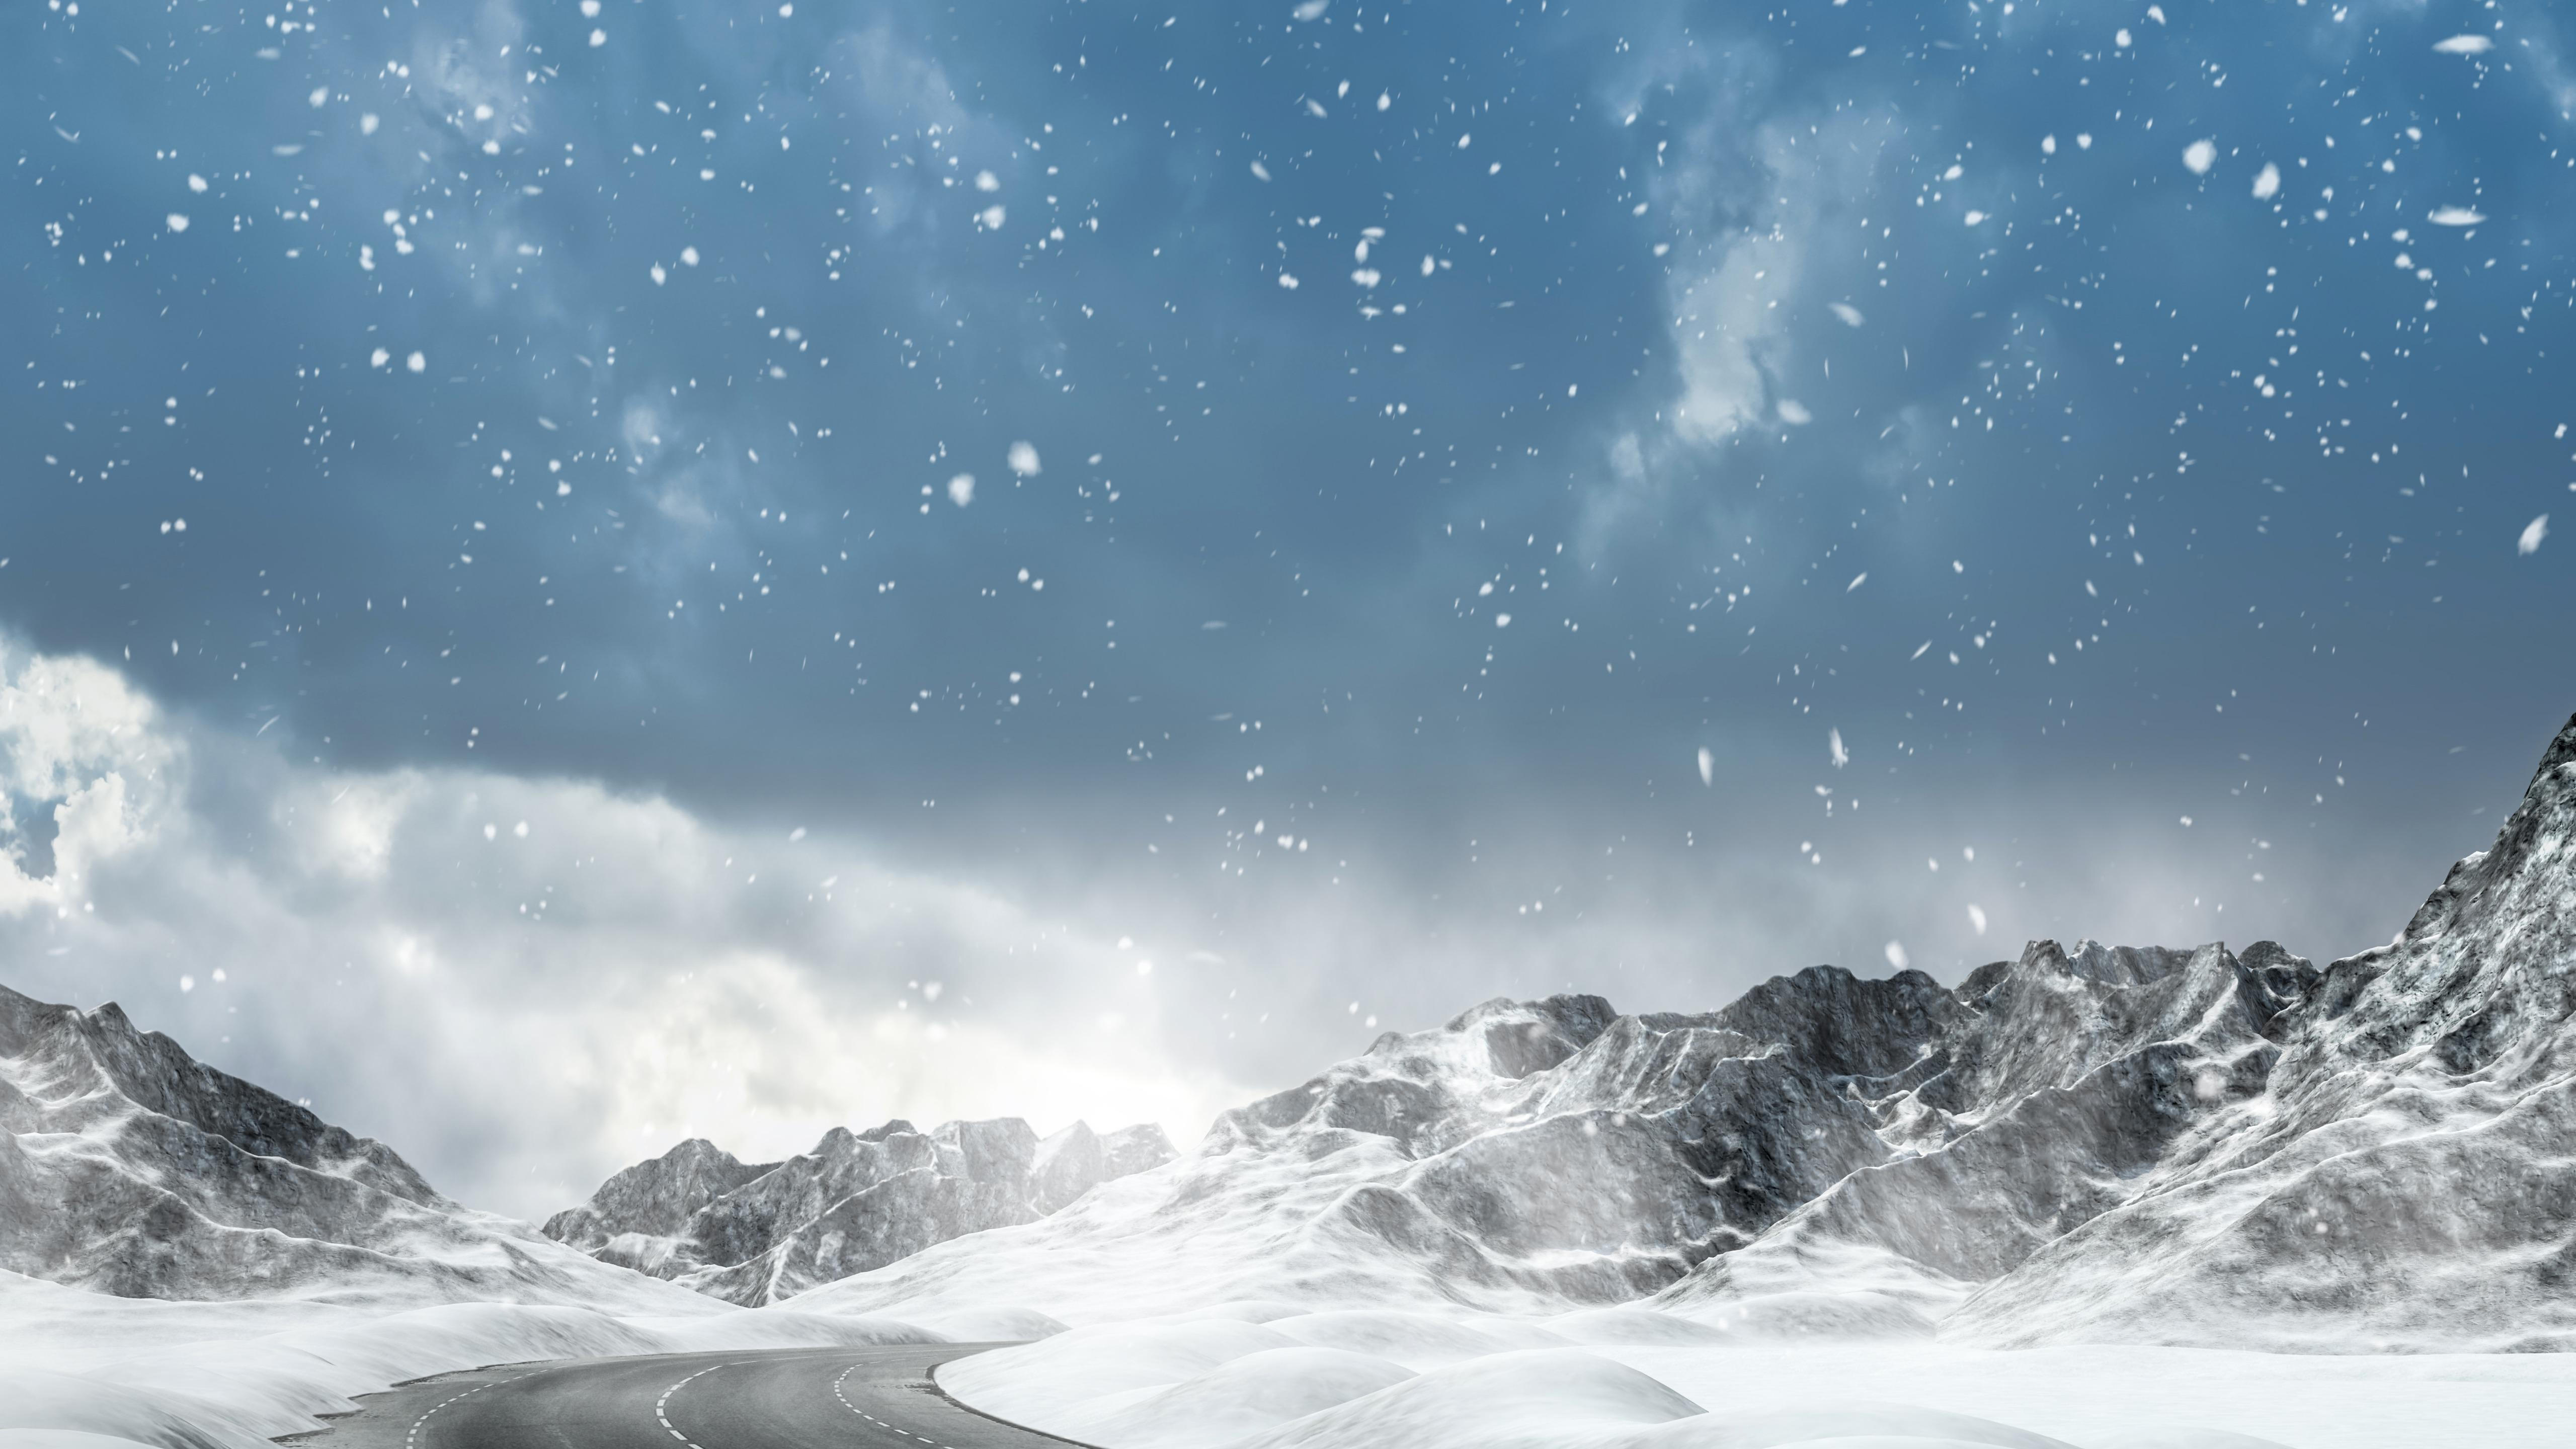 Winter snowfall in the mountains wallpaper